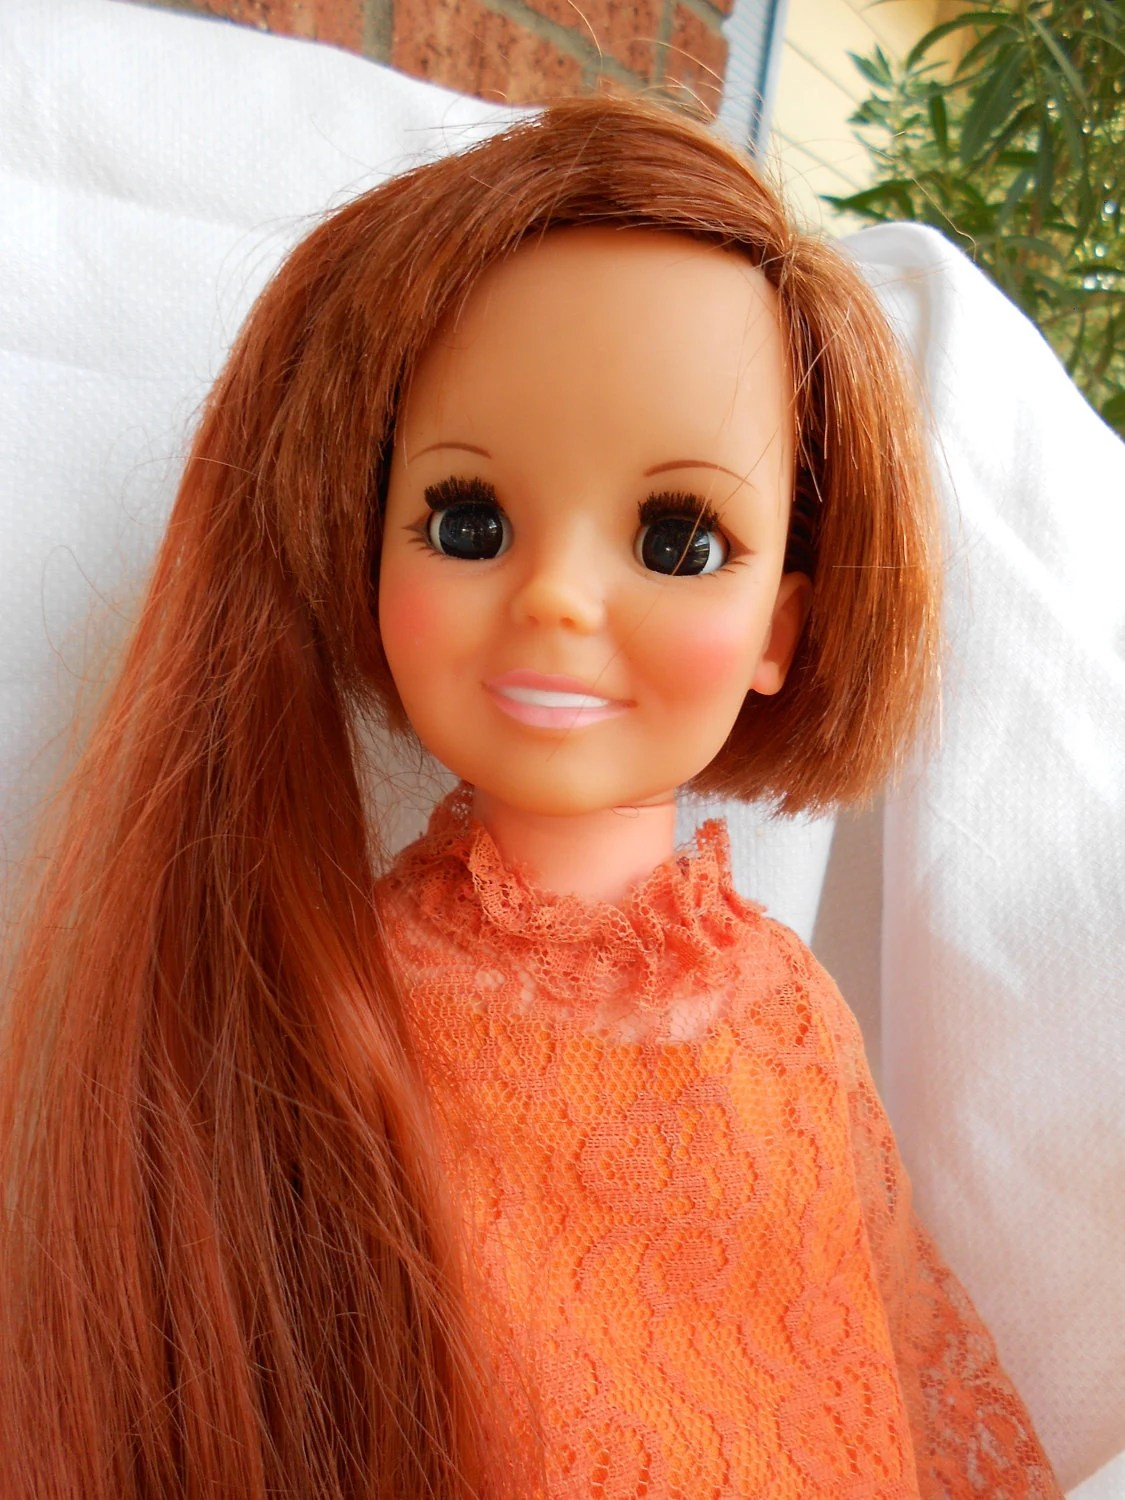 1971 ChrissyCrissy Doll By Ideal With Growing Hair